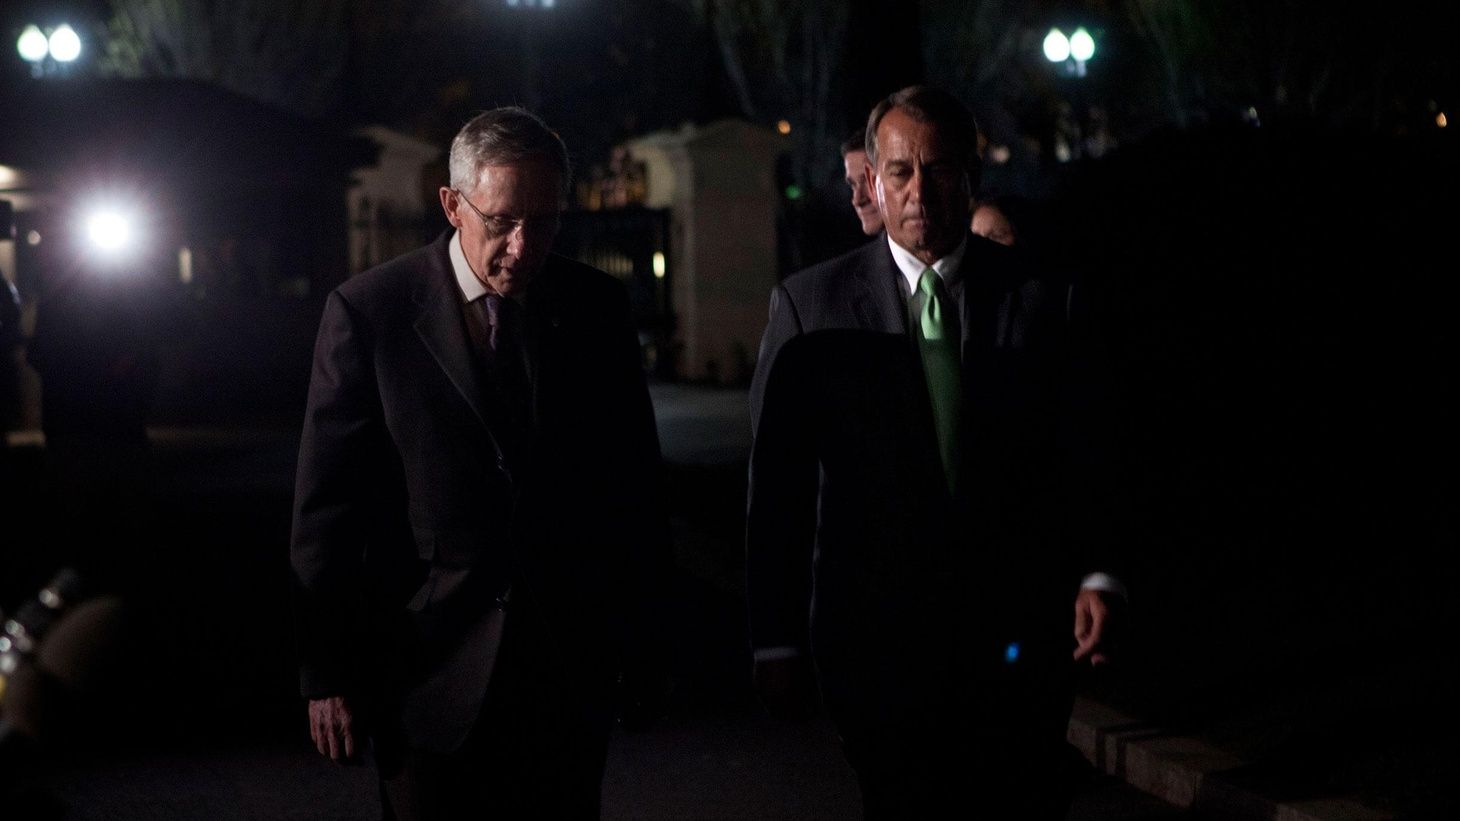 At air time, with no sign of a budget deal, a government shutdown looms large. Also, the GOP budget proposal for FY 2012, the Democrats' response, and the latest on Libya.